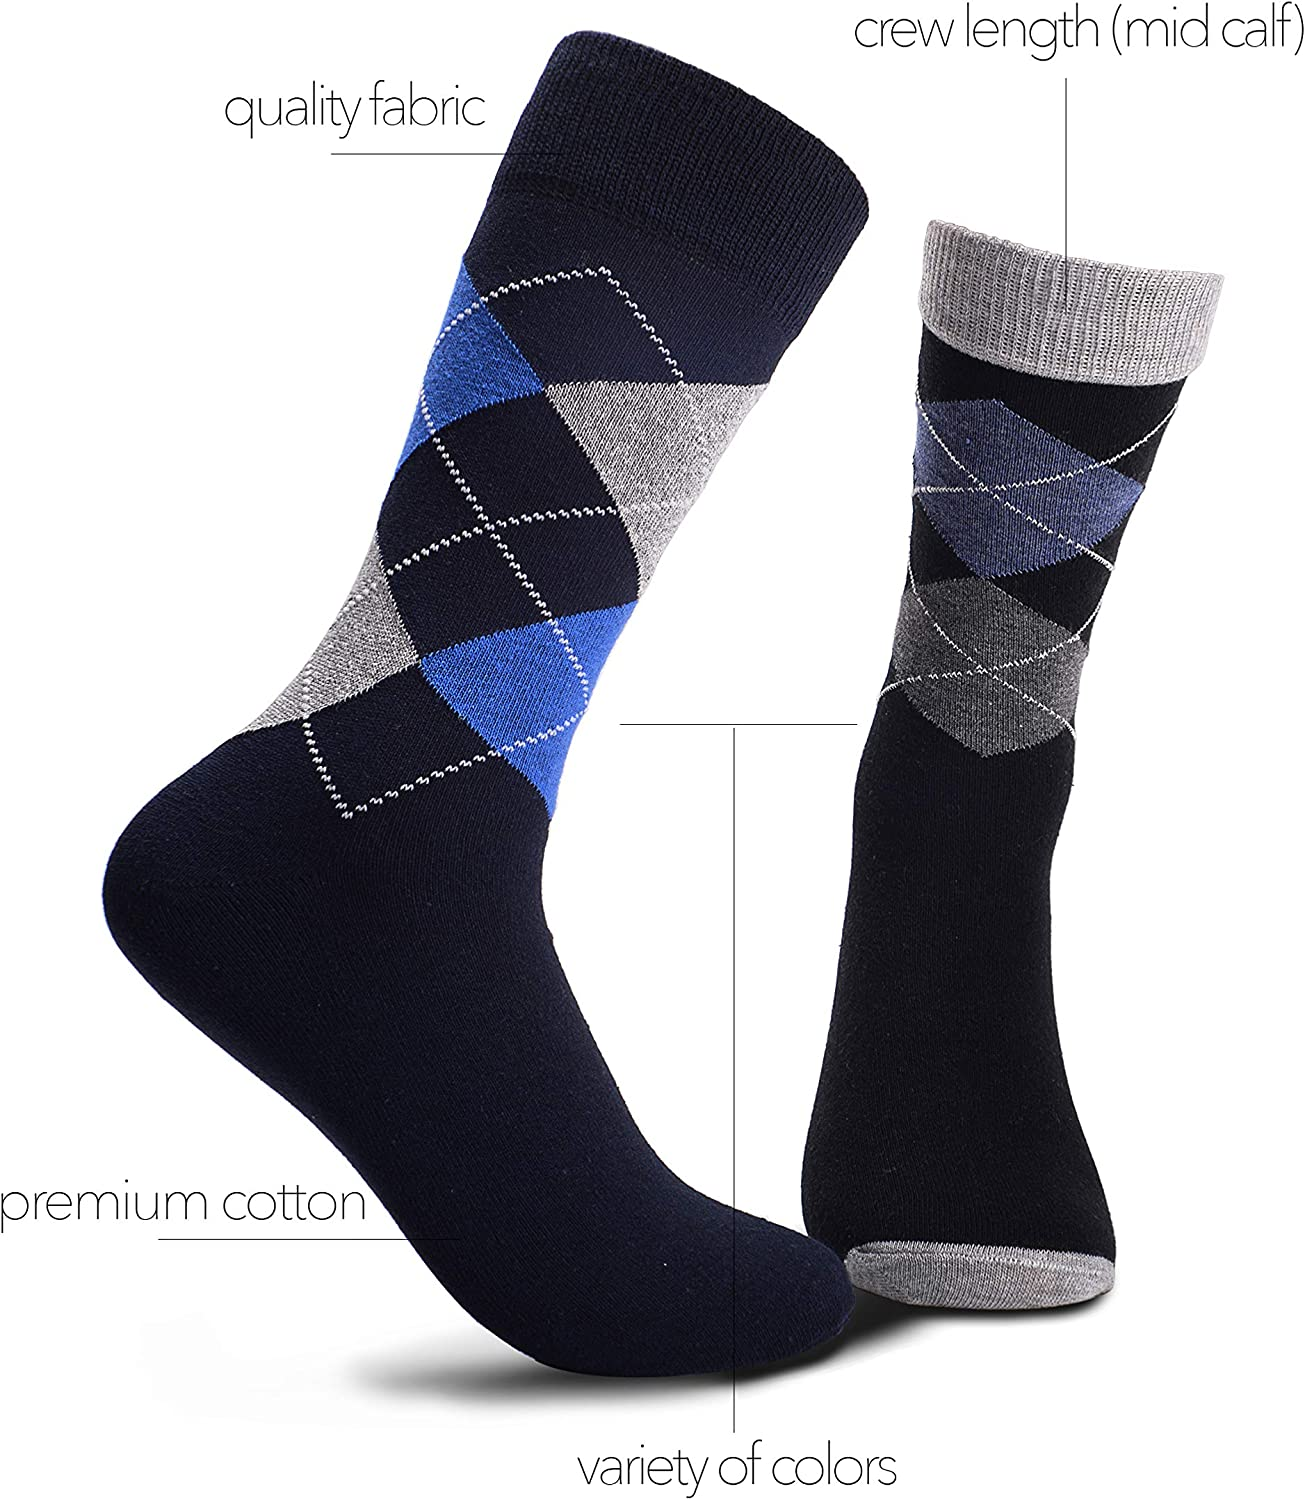 Mens Socks Pique Knit Mottled Beige And Navy Dress Socks Casual Wear Good Quality Durable Socks Mid Calf Affordable Price